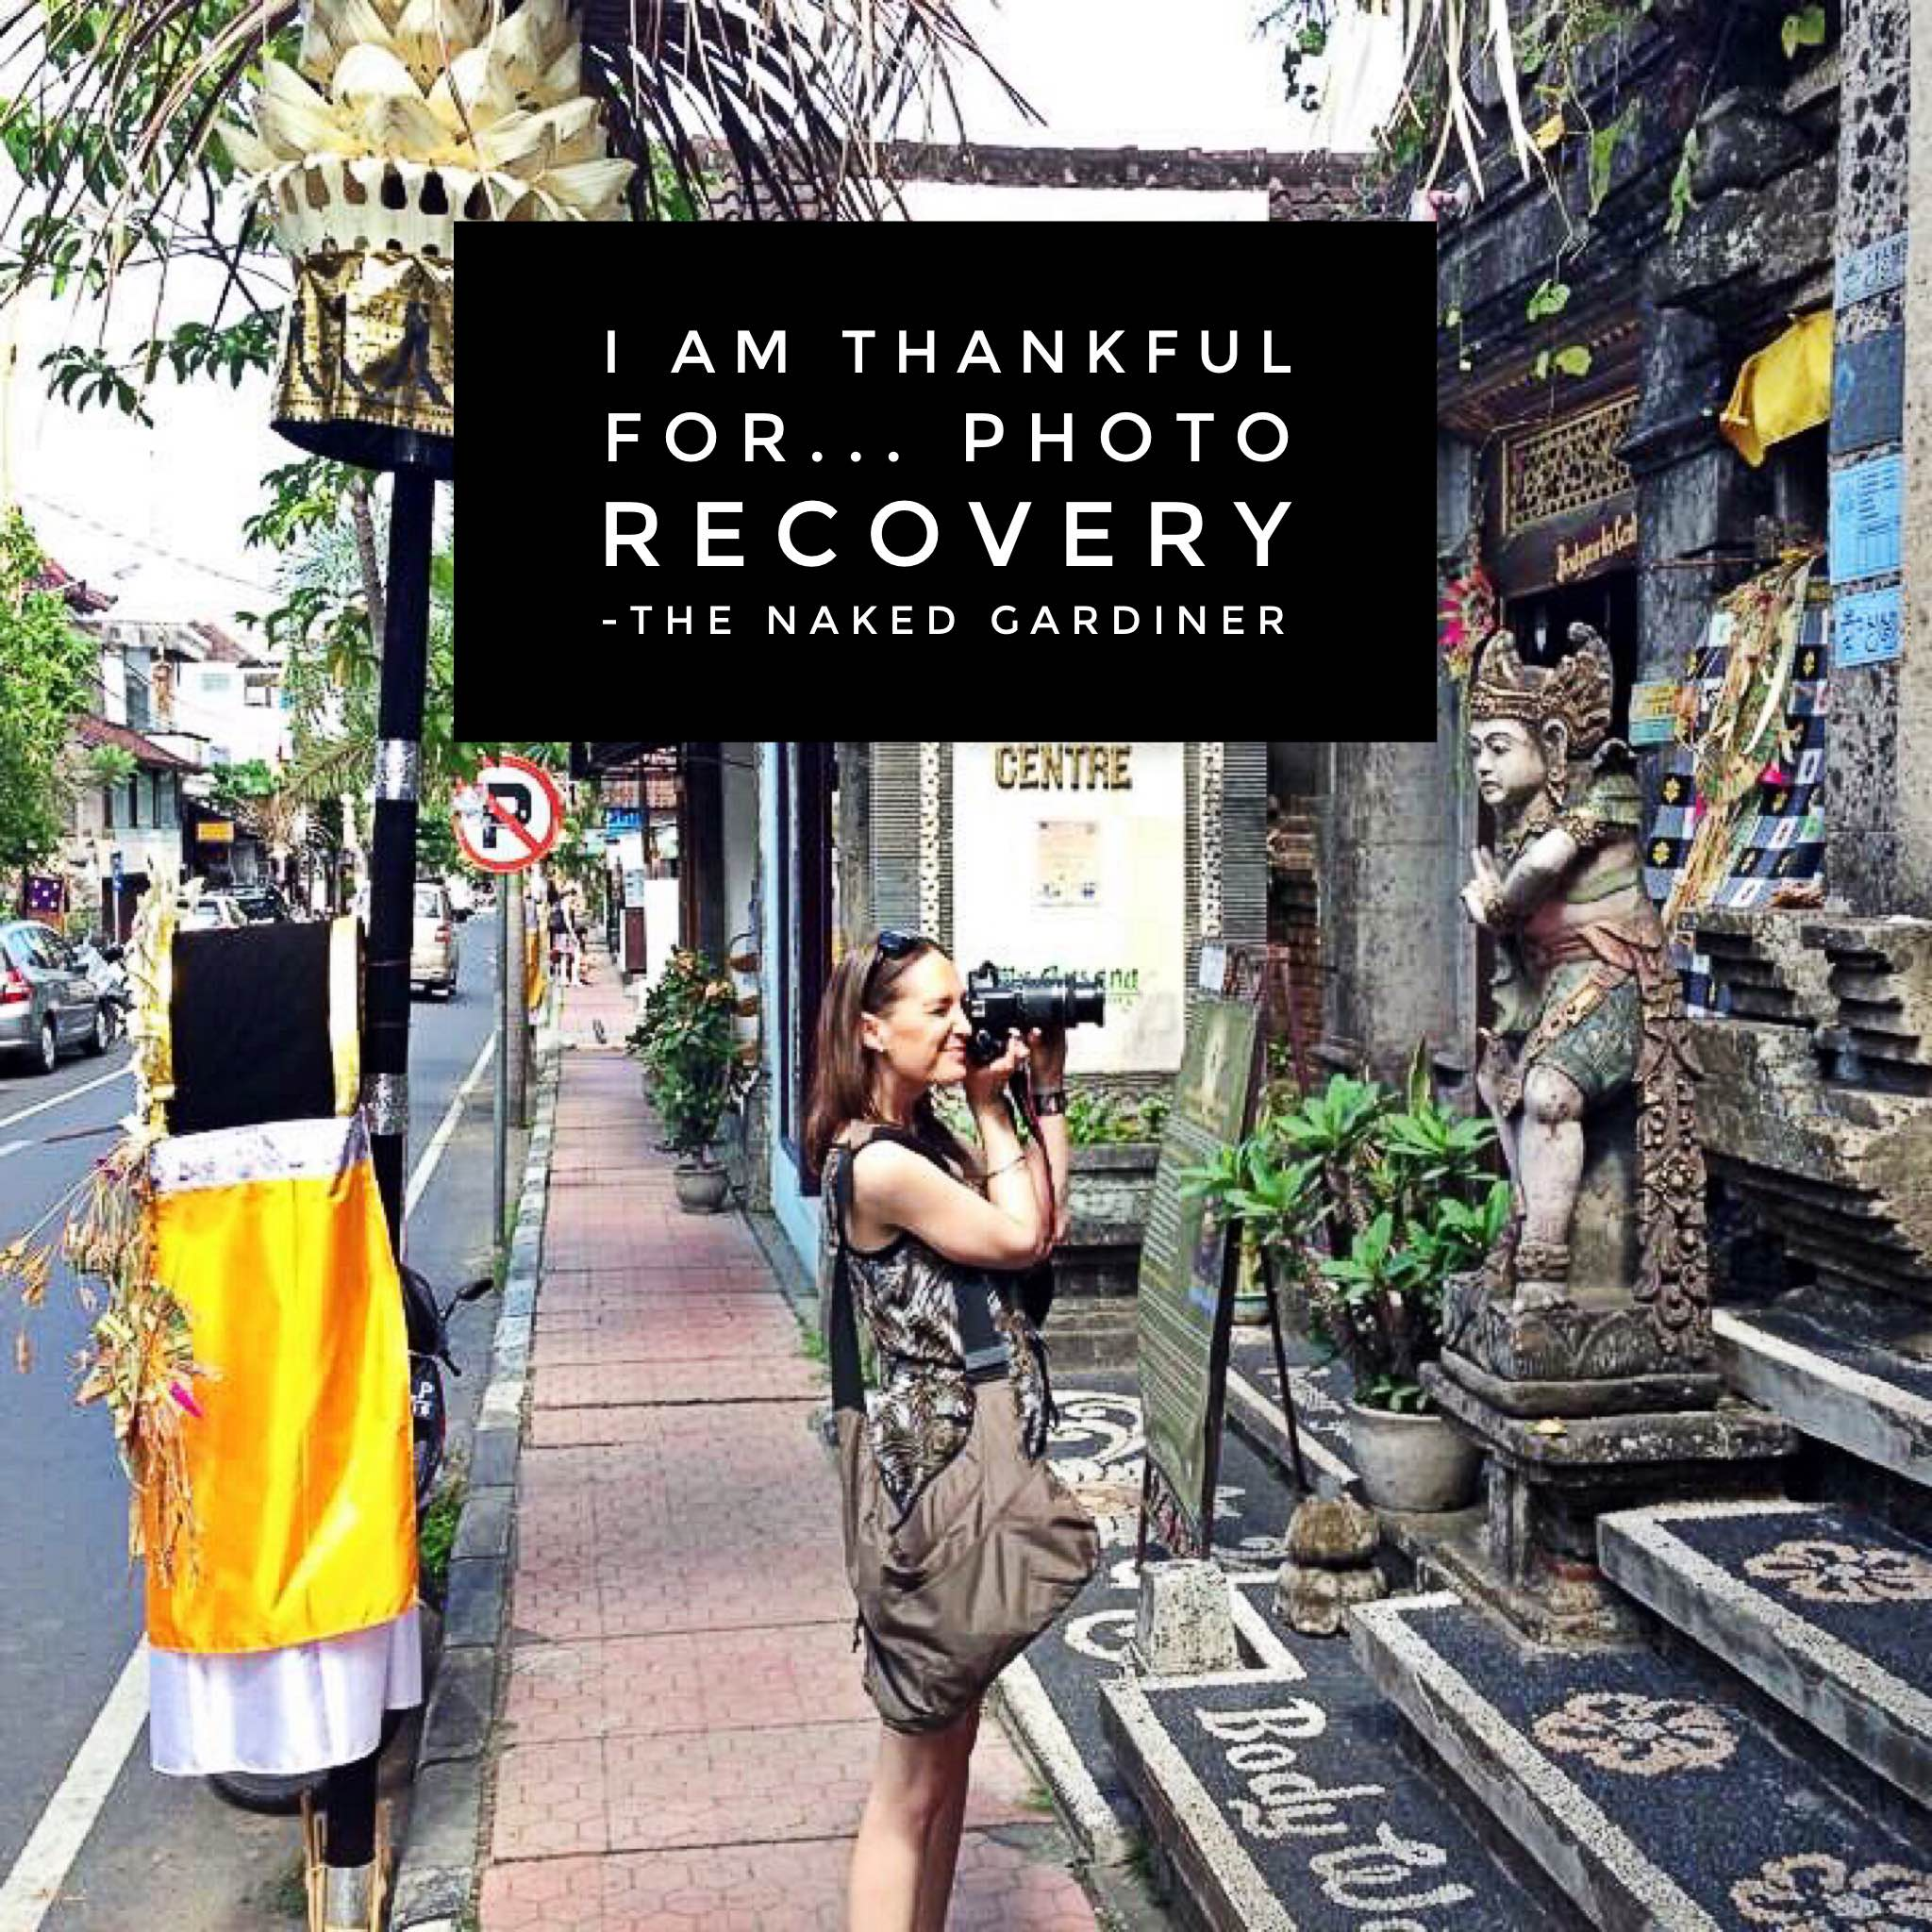 thankful-thursdays-photo-recovery-thenakedgardiner-kathygardiner